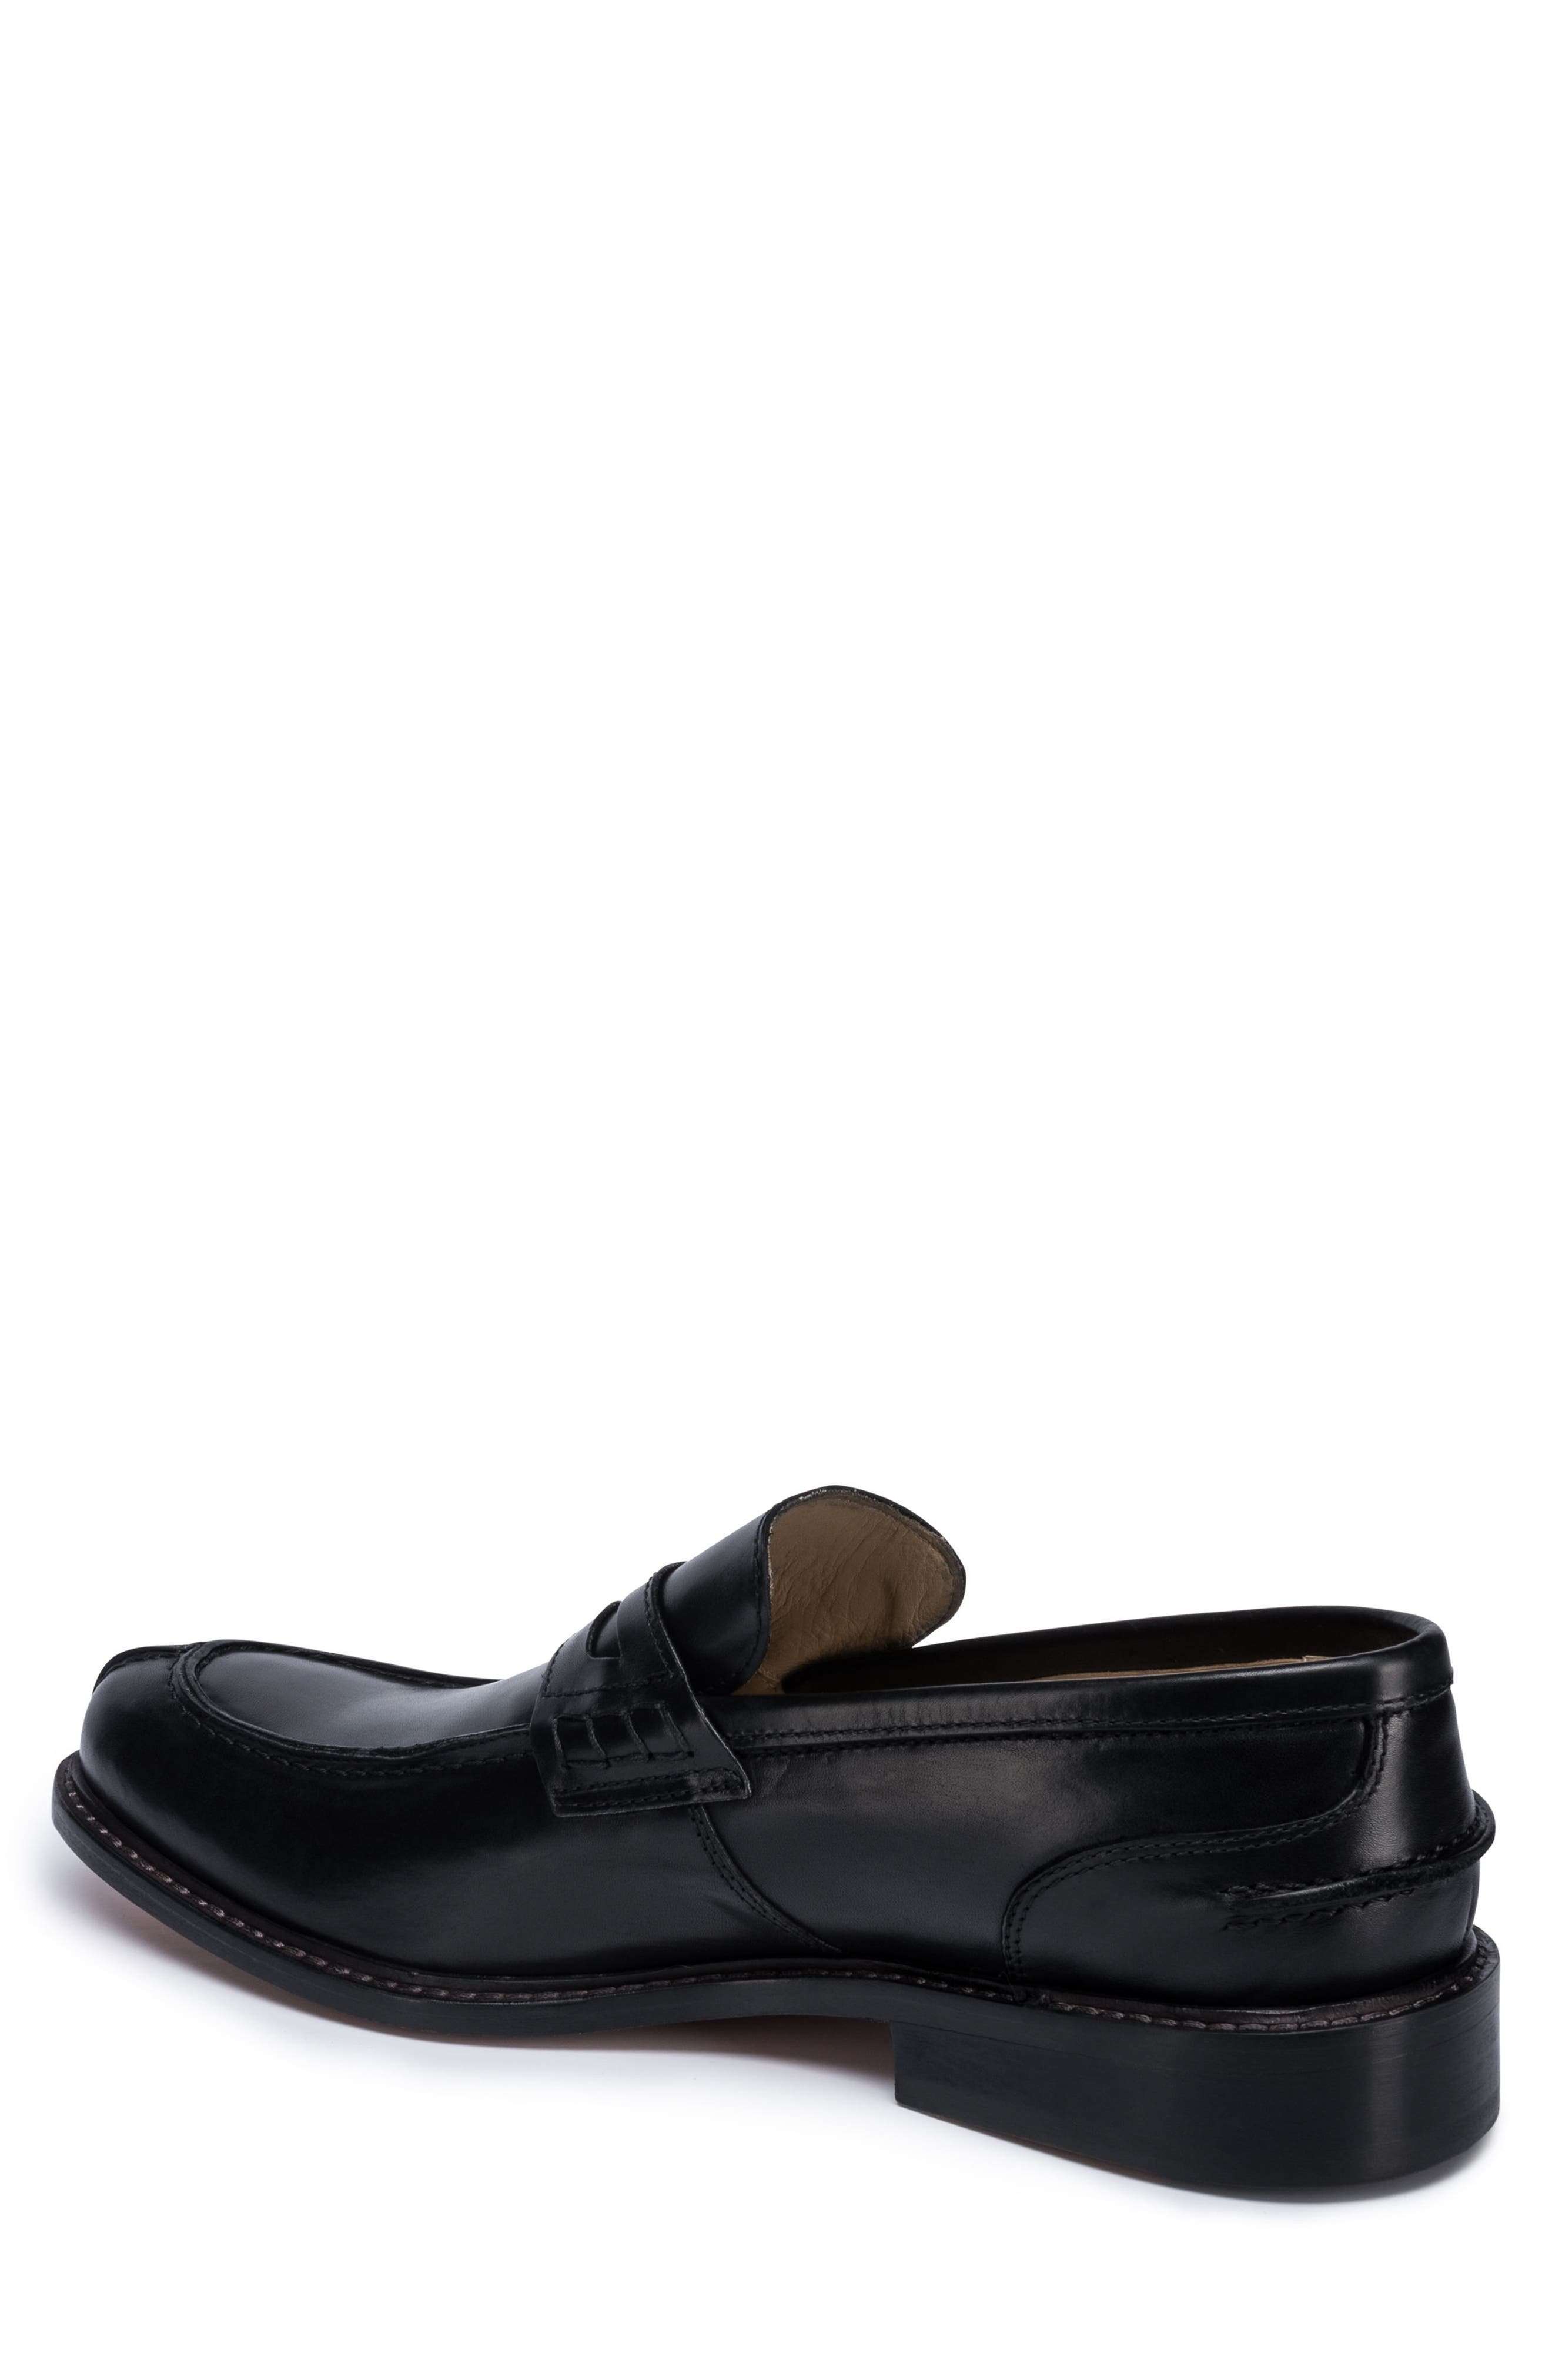 Apron Toe Penny Loafer,                             Alternate thumbnail 2, color,                             Nero Leather